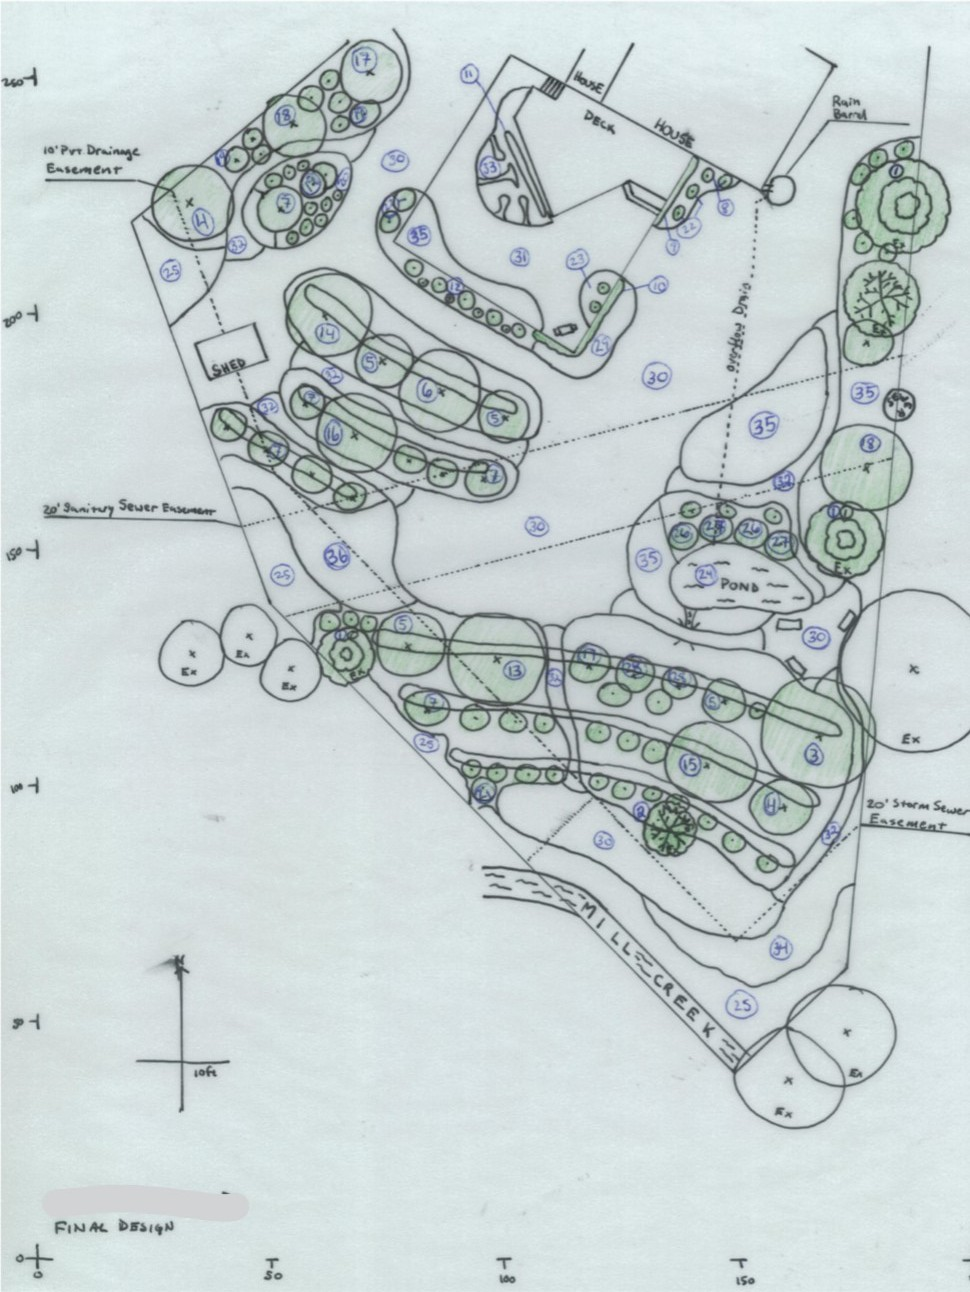 Ecological Landscaping - Permaculture Concept Planting Design